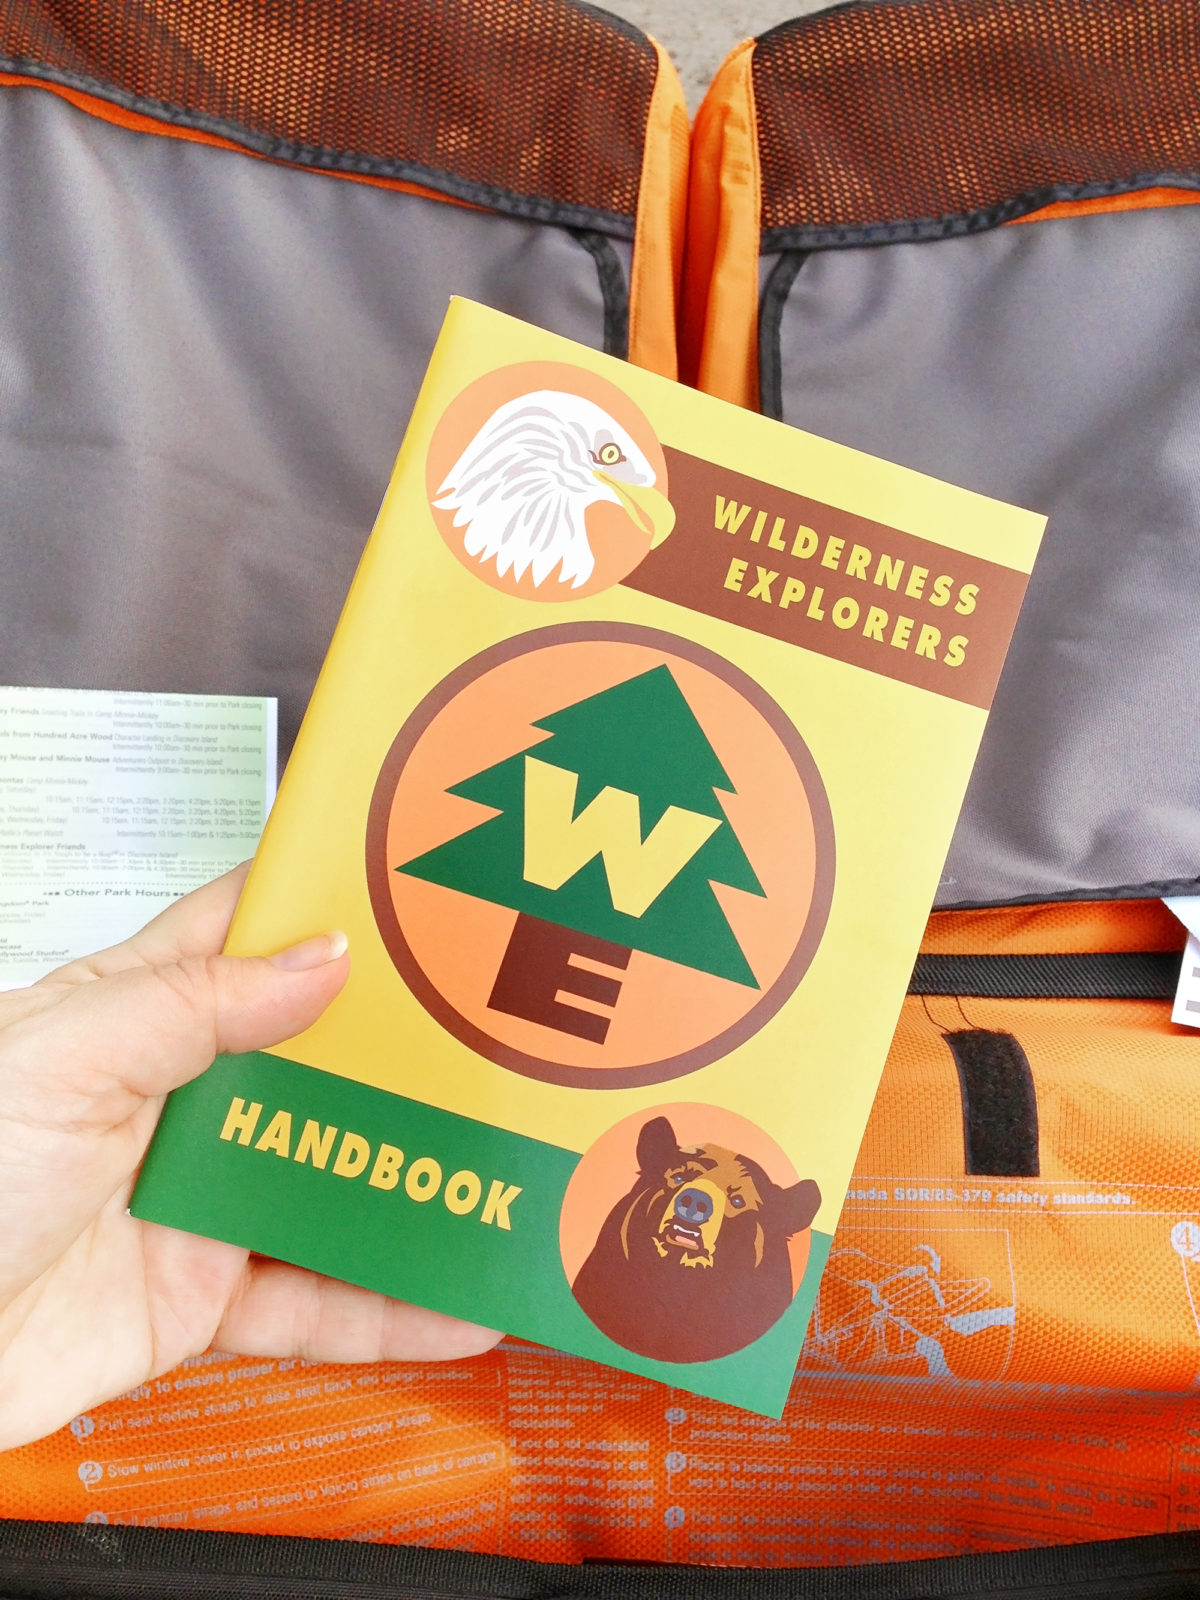 Wilderness Explorers Club Handbook at Disney's Animal Kingdom